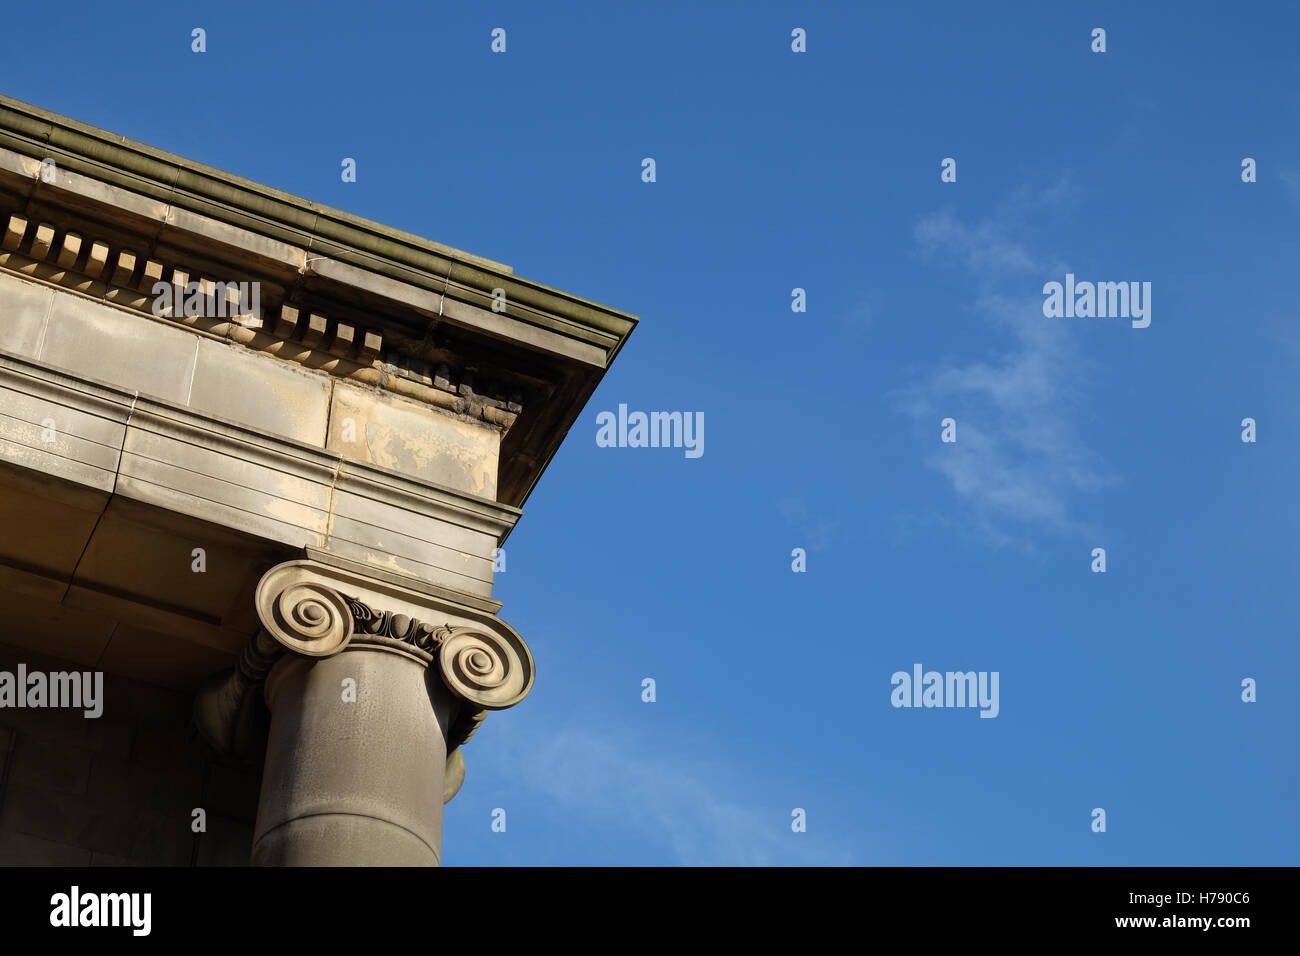 Architectural detail of the former Curzon Street Station, Birmingham, UK - Stock Image